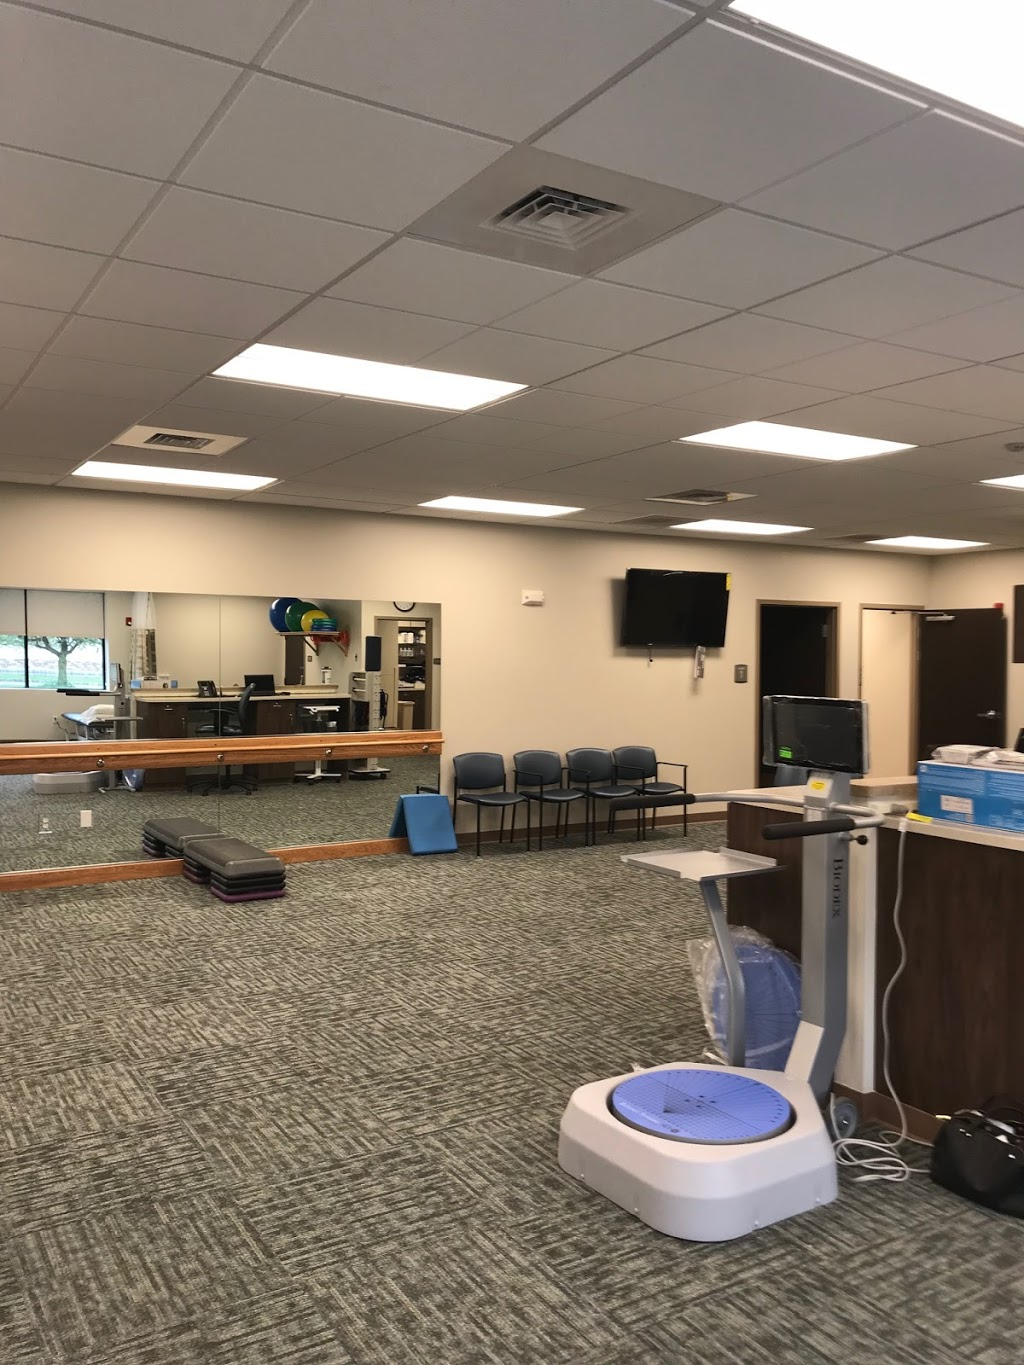 Physical Therapy at St. Lukes - health  | Photo 2 of 4 | Address: 187 County Road 519, Belvidere, NJ 07823, USA | Phone: (908) 847-3390